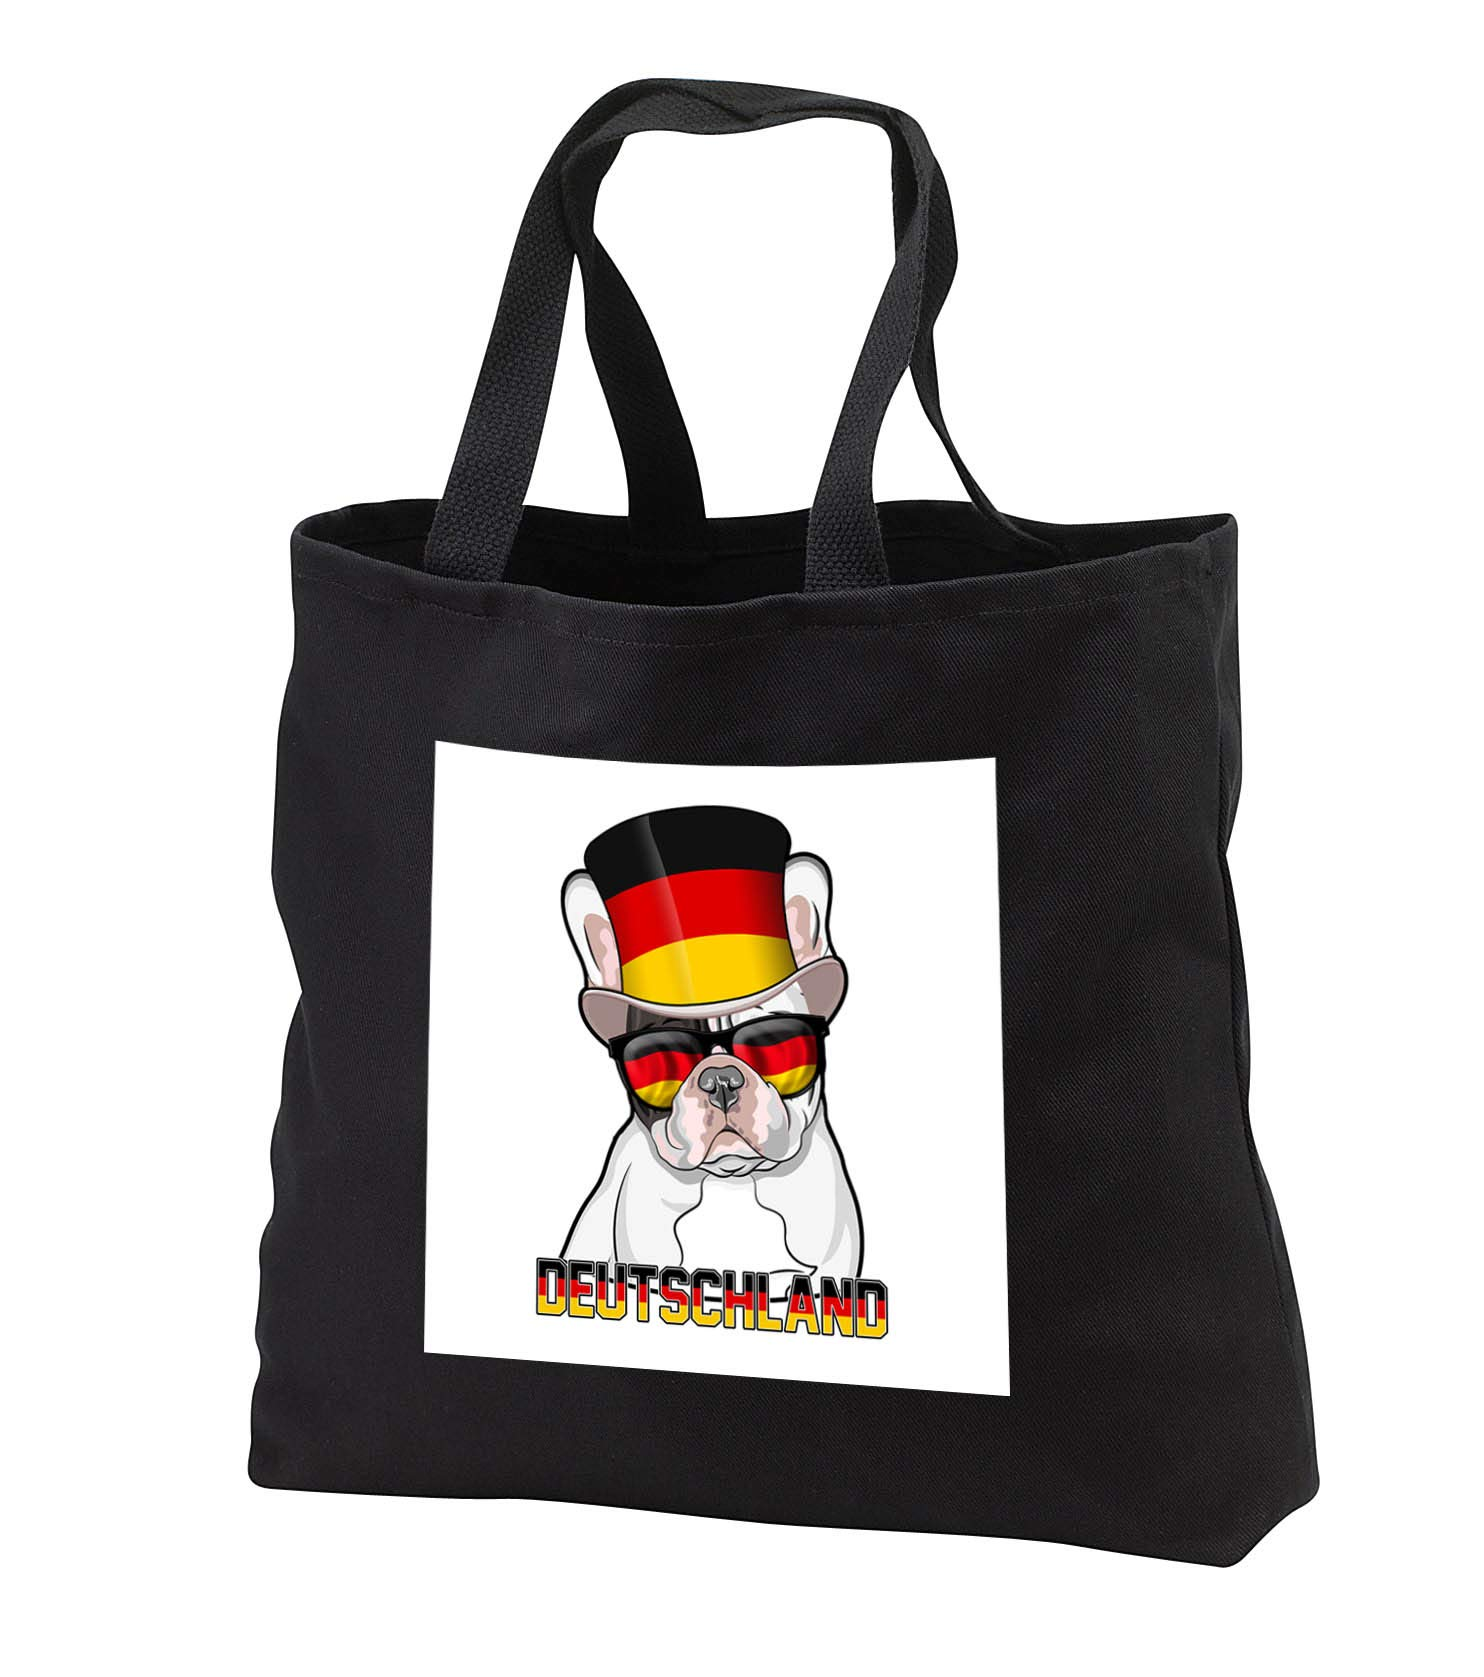 Carsten Reisinger - Illustrations - Germany French Bulldog with German Flag Top Hat and Sunglasses - Tote Bags - Black Tote Bag 14w x 14h x 3d (tb_293426_1)